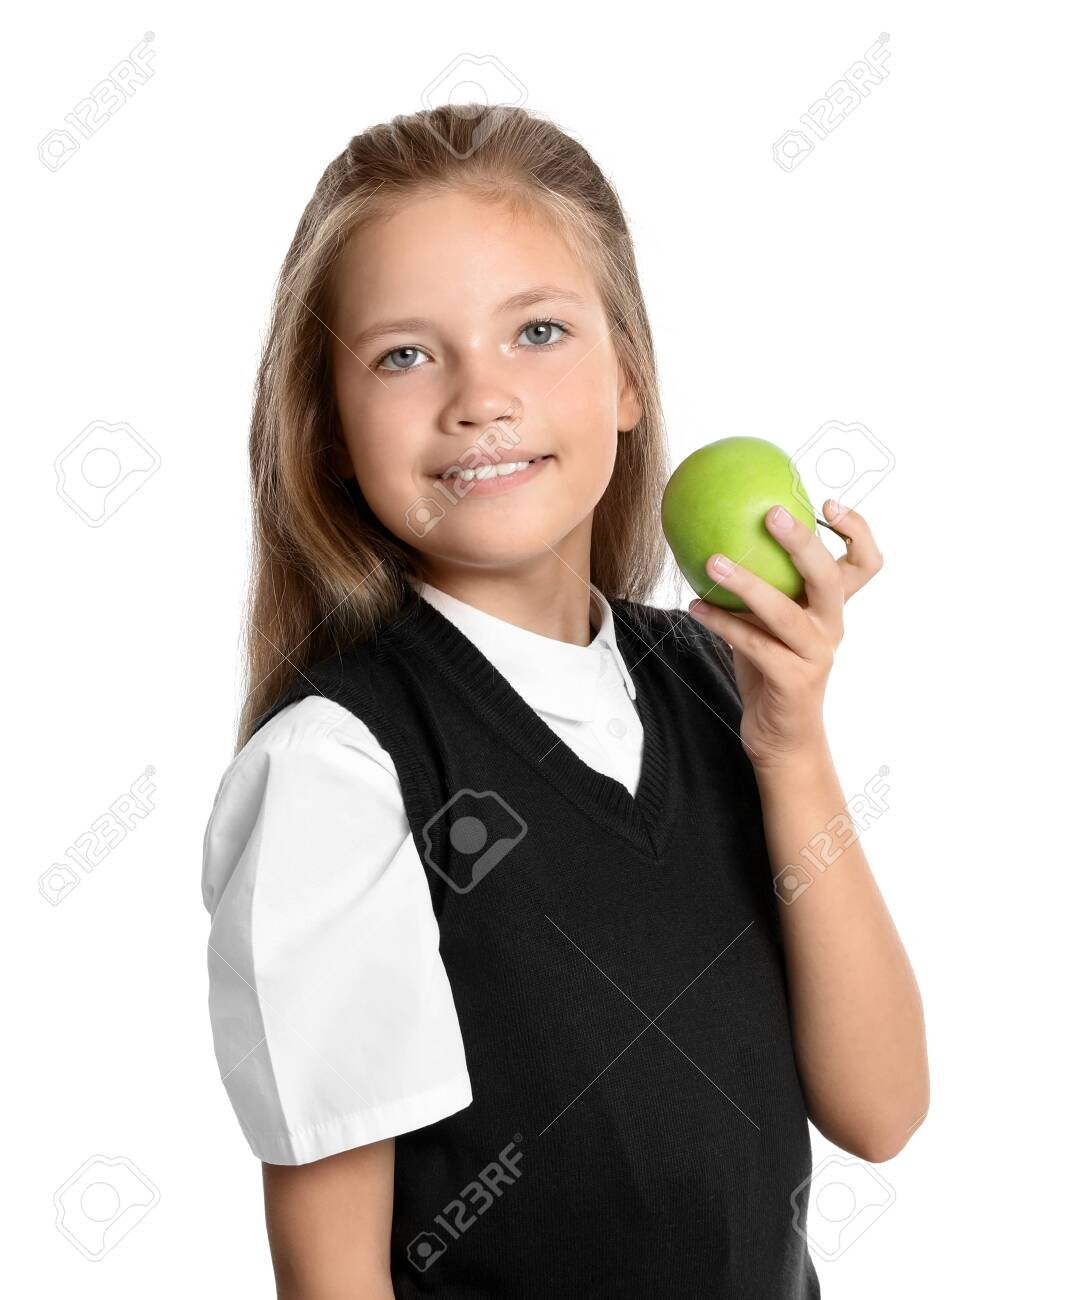 Happy girl with apple on white background. Healthy food for school lunch - 132914415